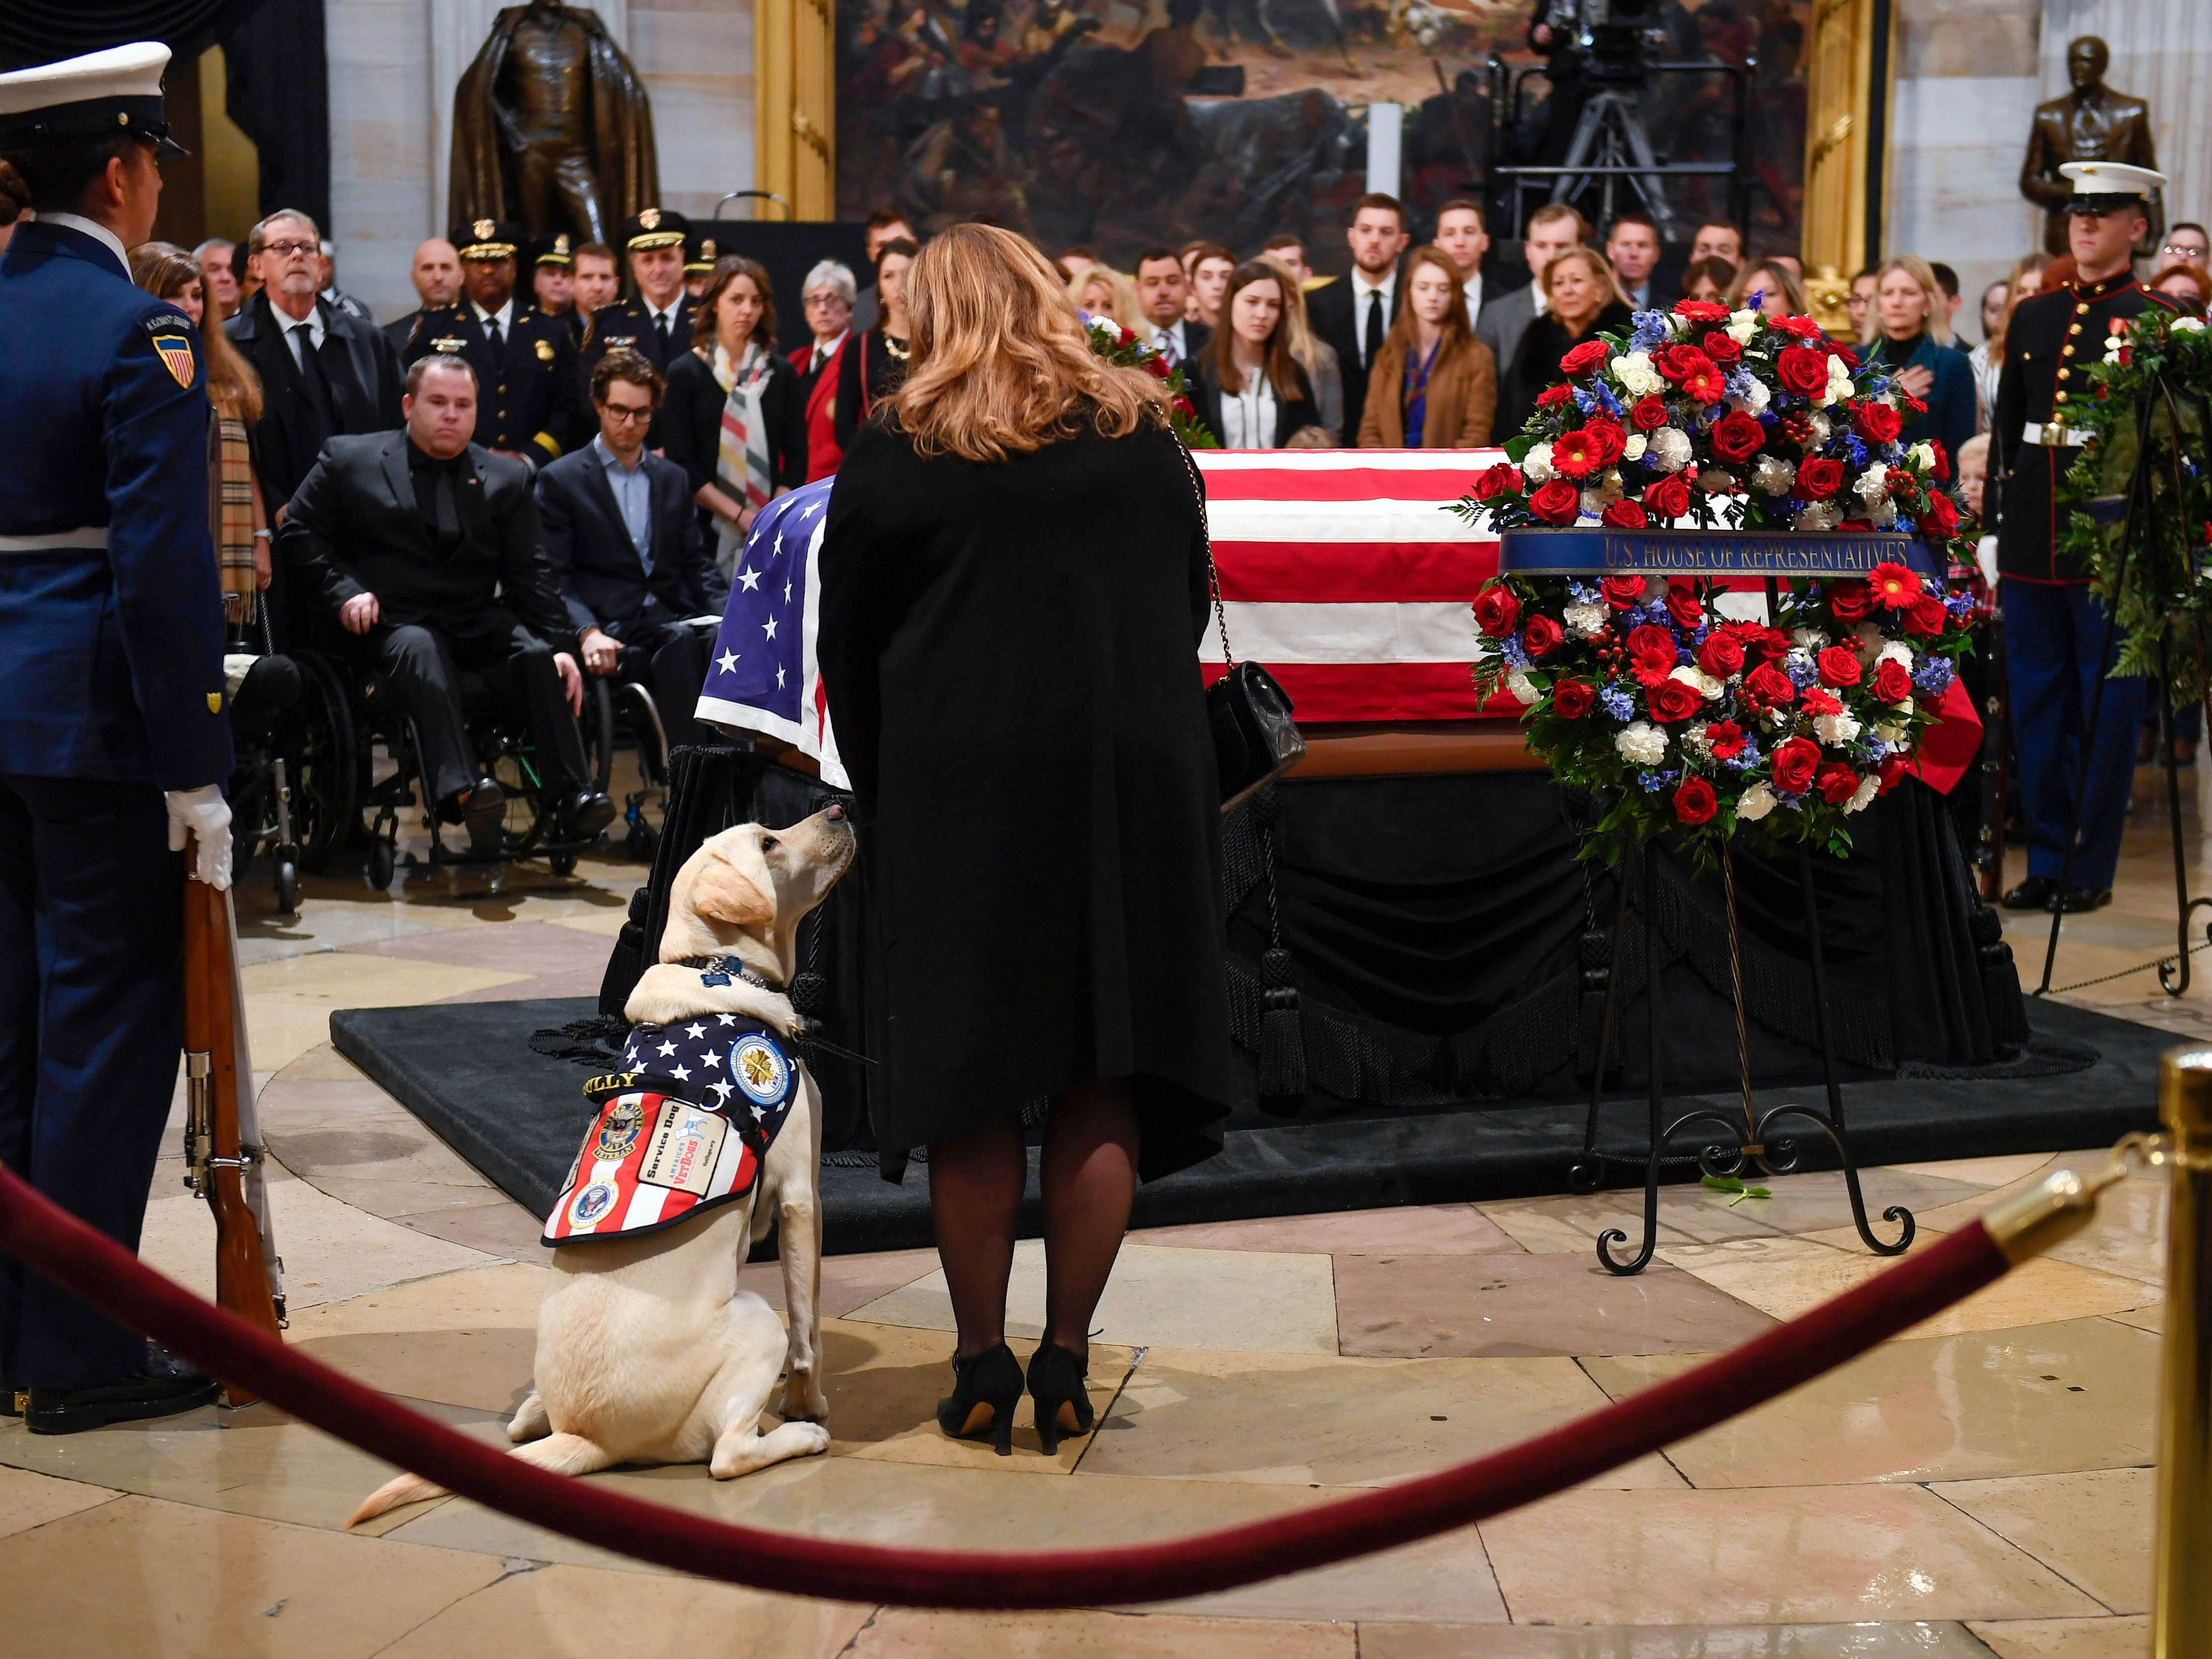 What's closed on national day of mourning for former President Bush?